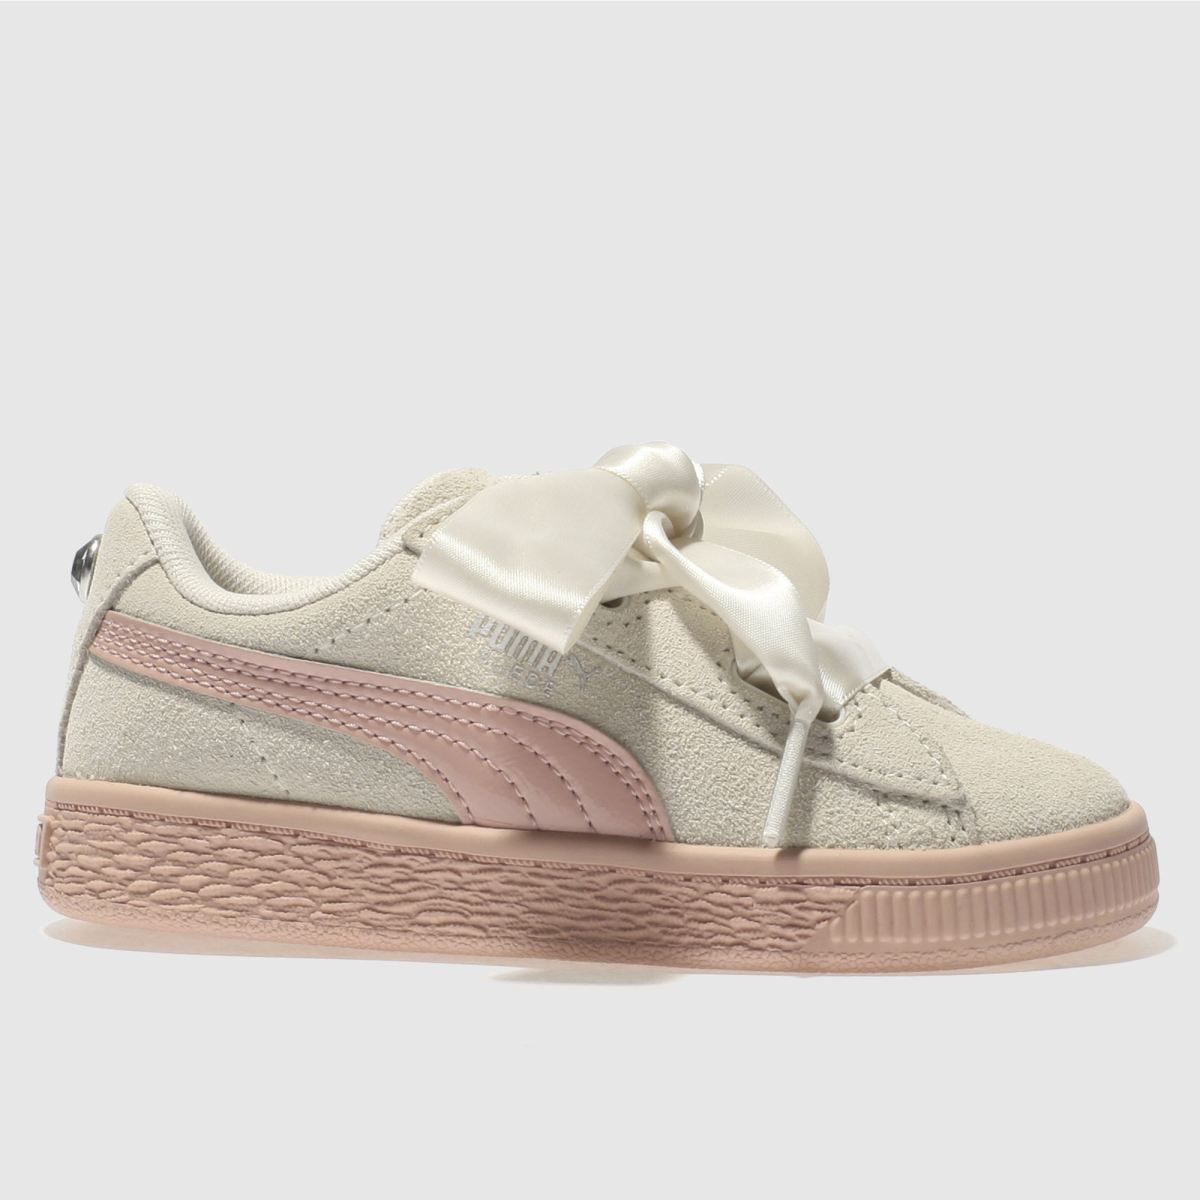 Puma White Suede Heart Jewel Girls Toddler Toddler